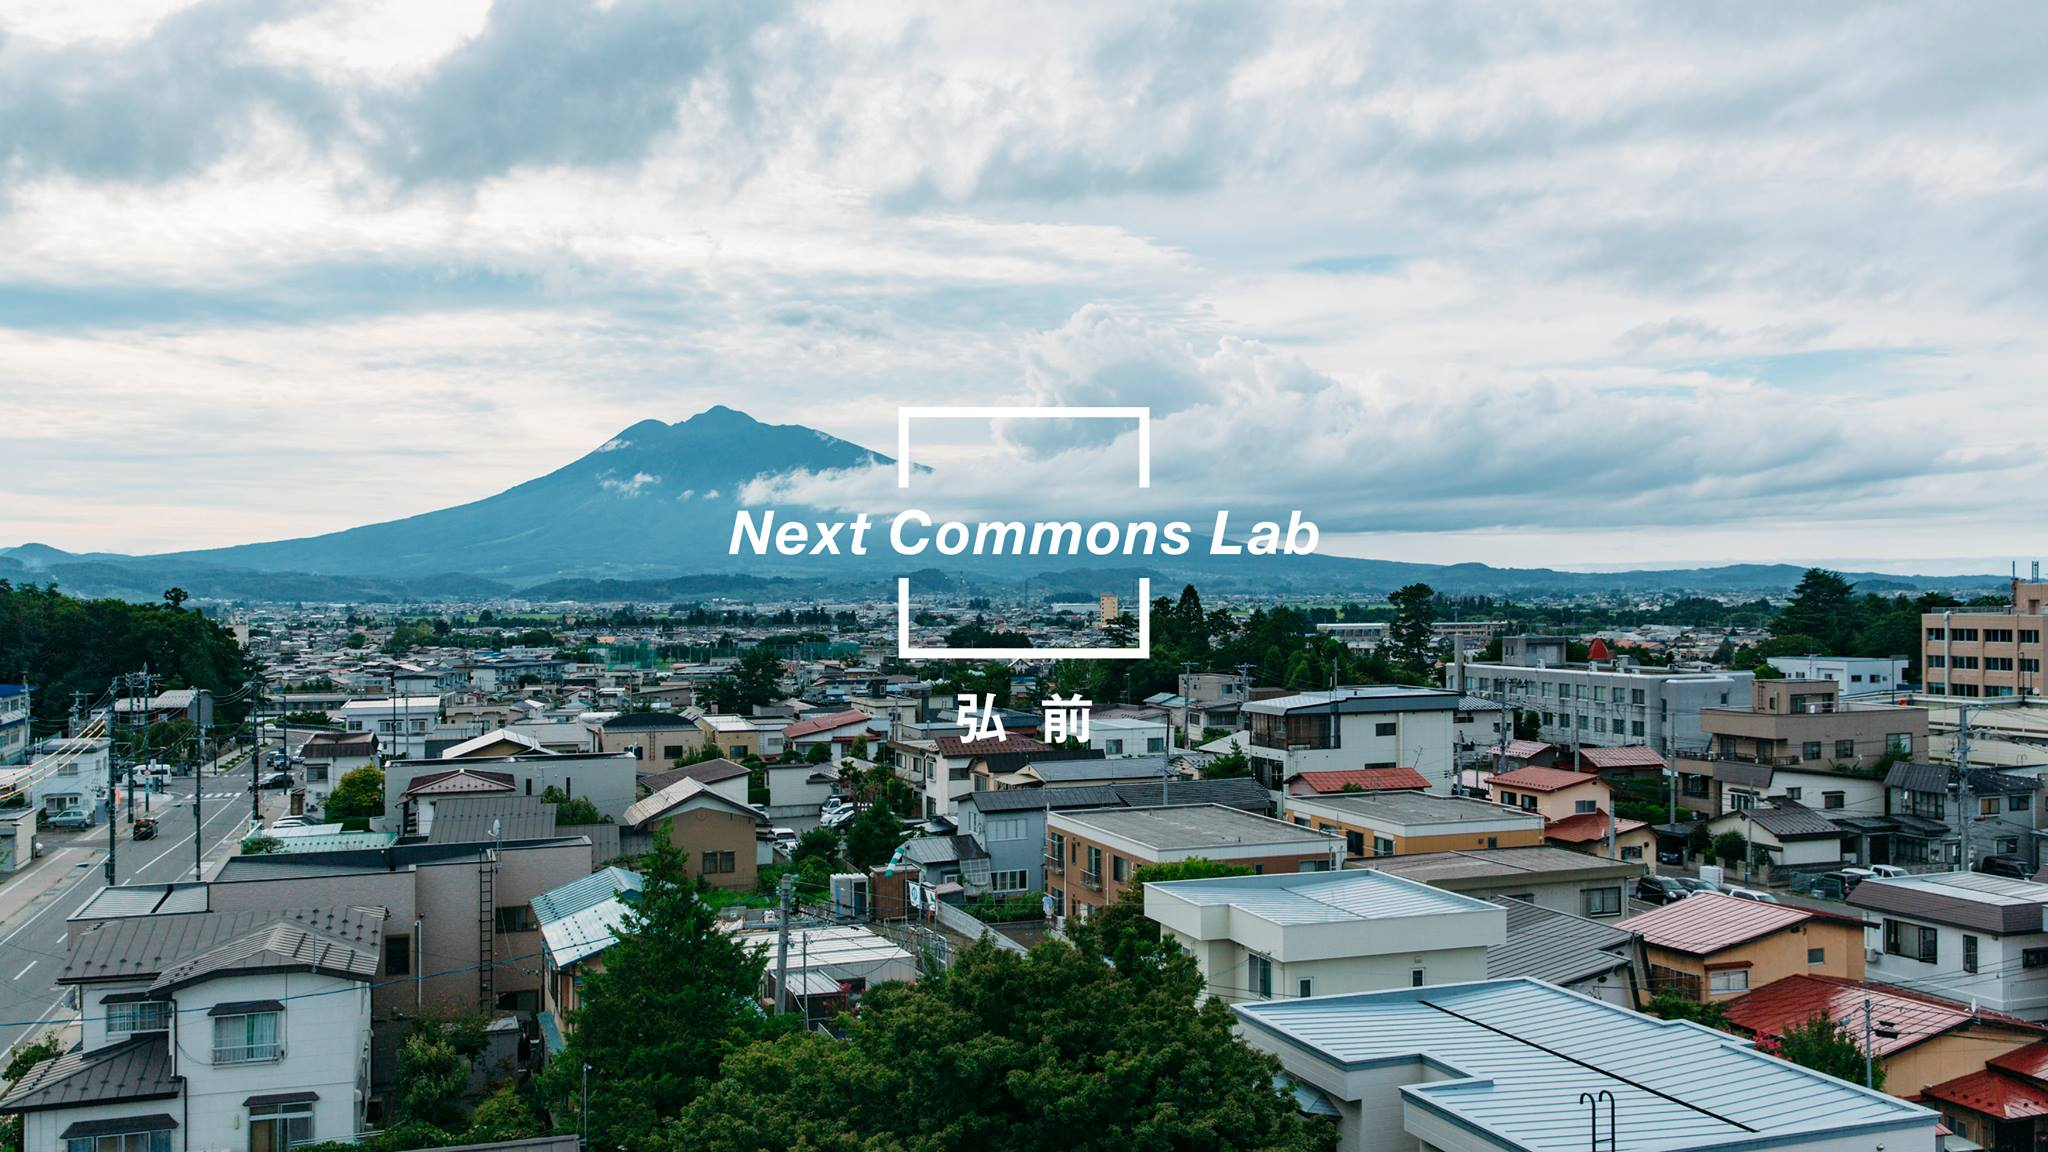 nextcommonslab